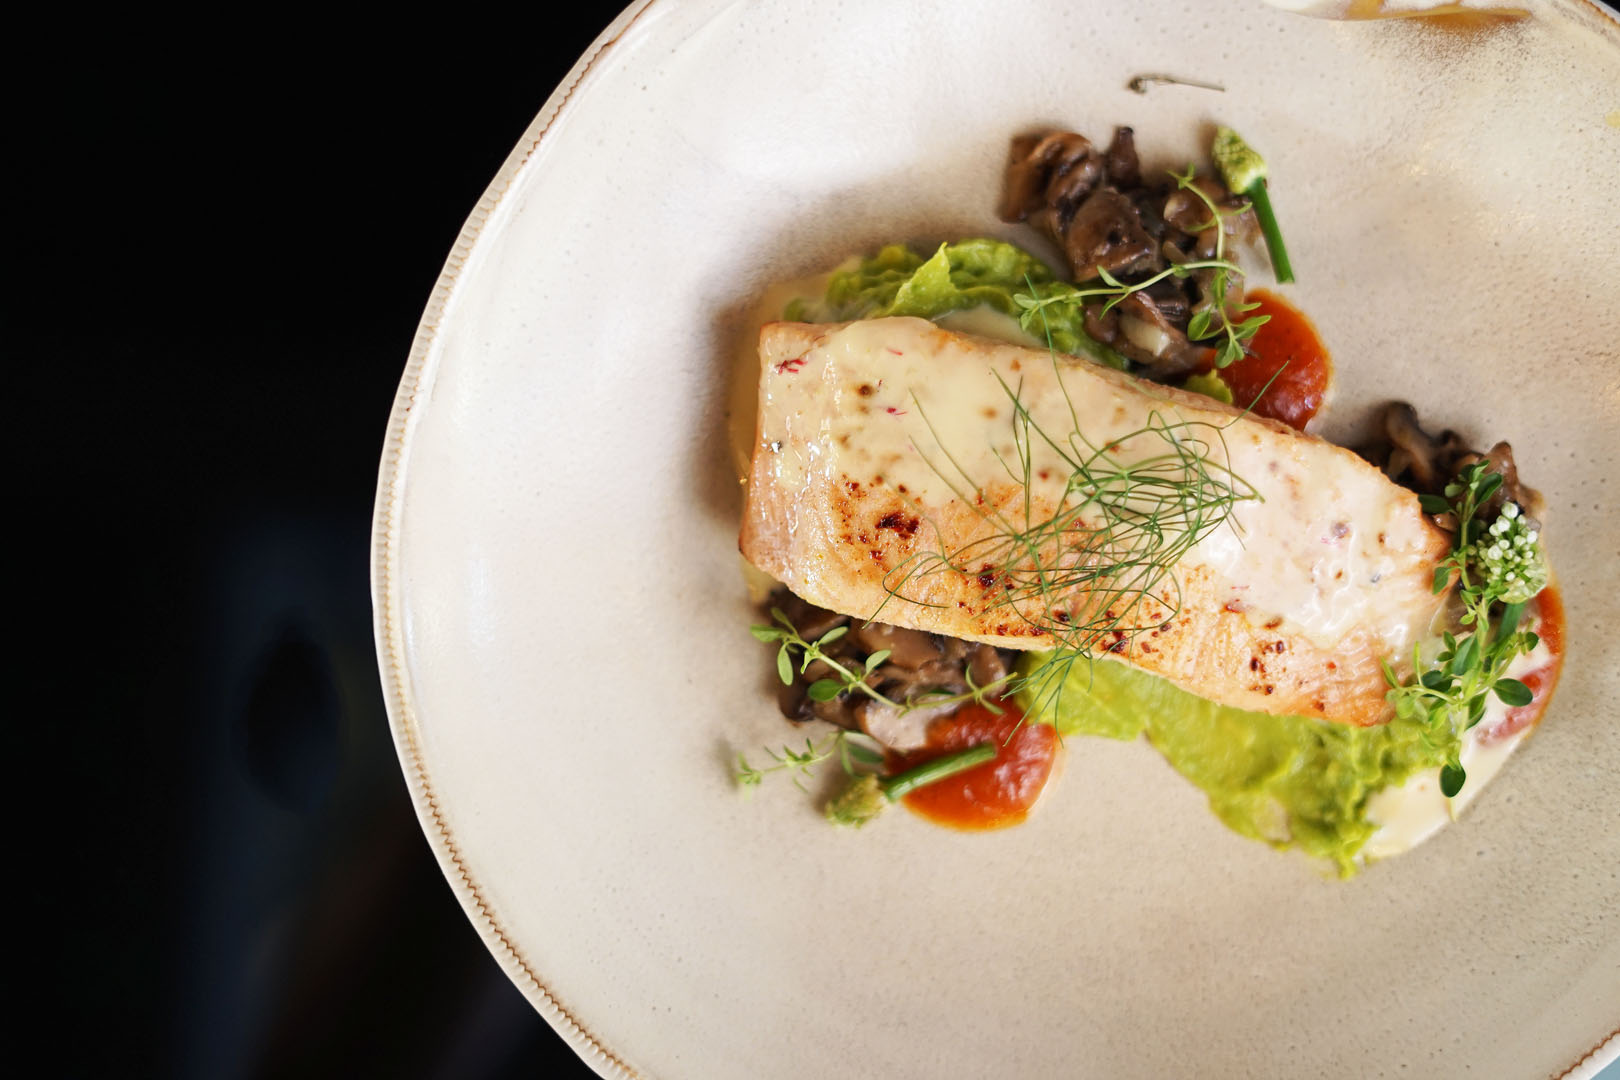 GRILLED SALMON WITH GUACAMOLE & SAFRON SAUCE